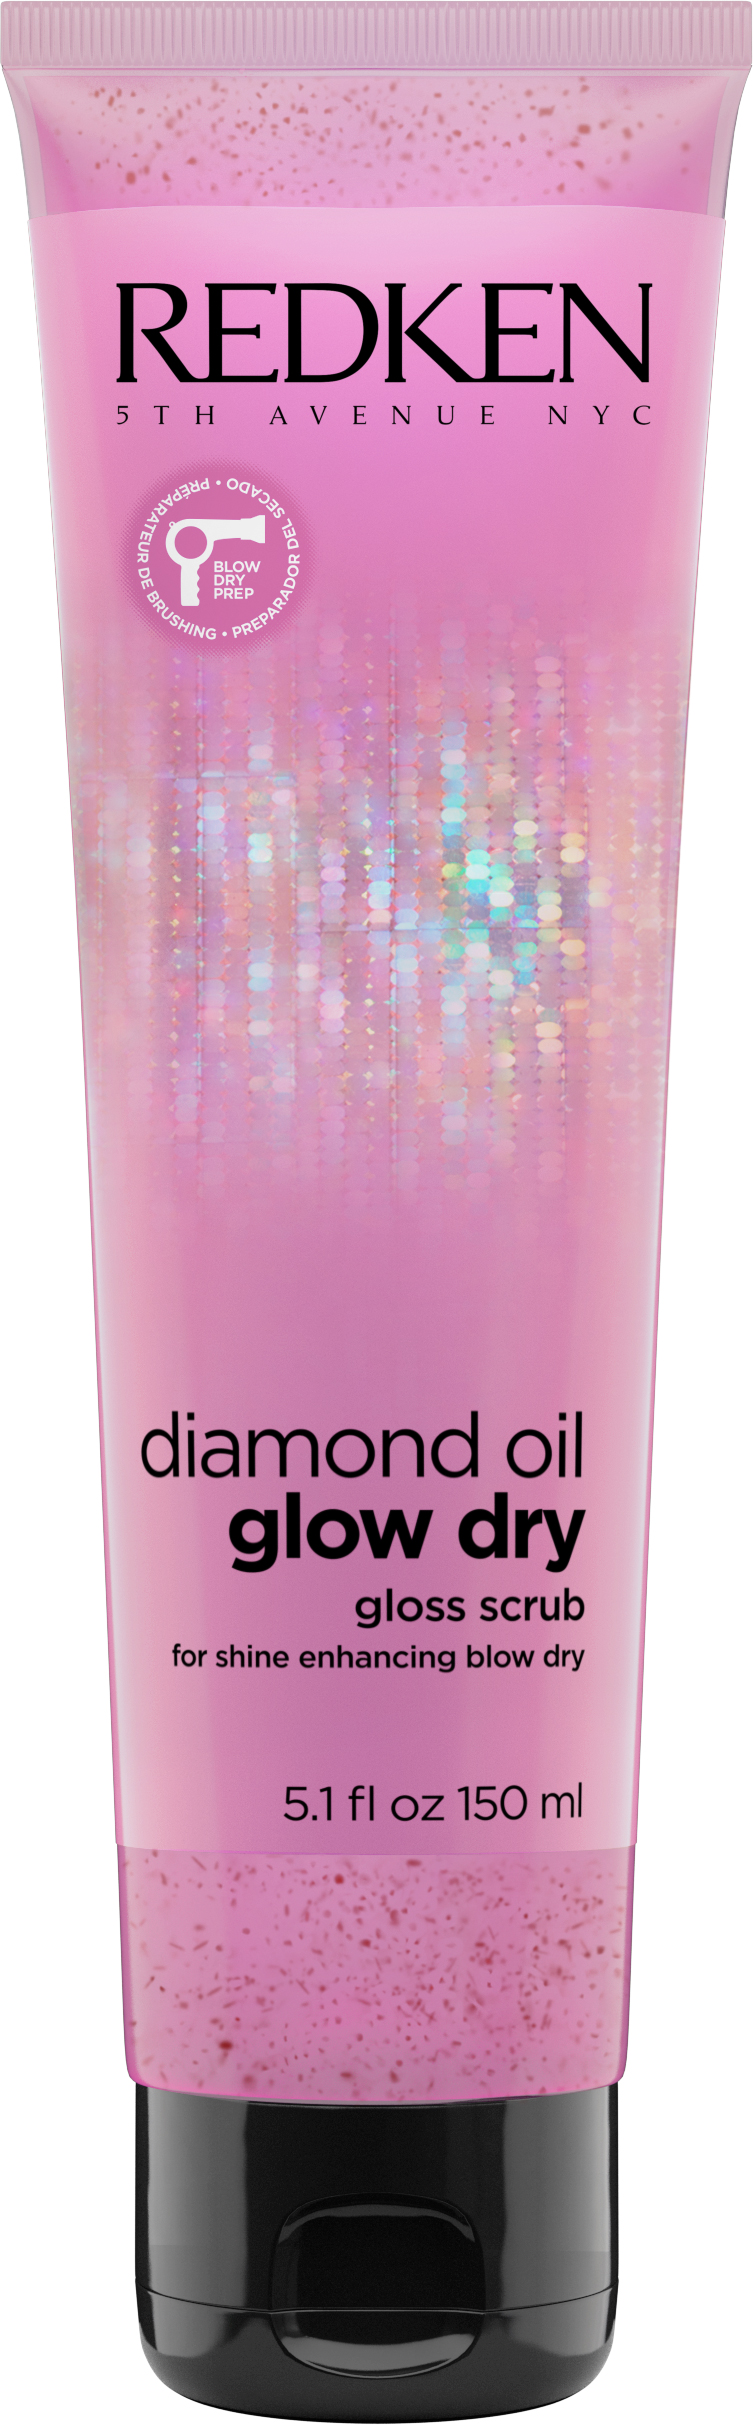 Redken Diamond Oil Glow Dry Gloss Scrub RRP$35.00